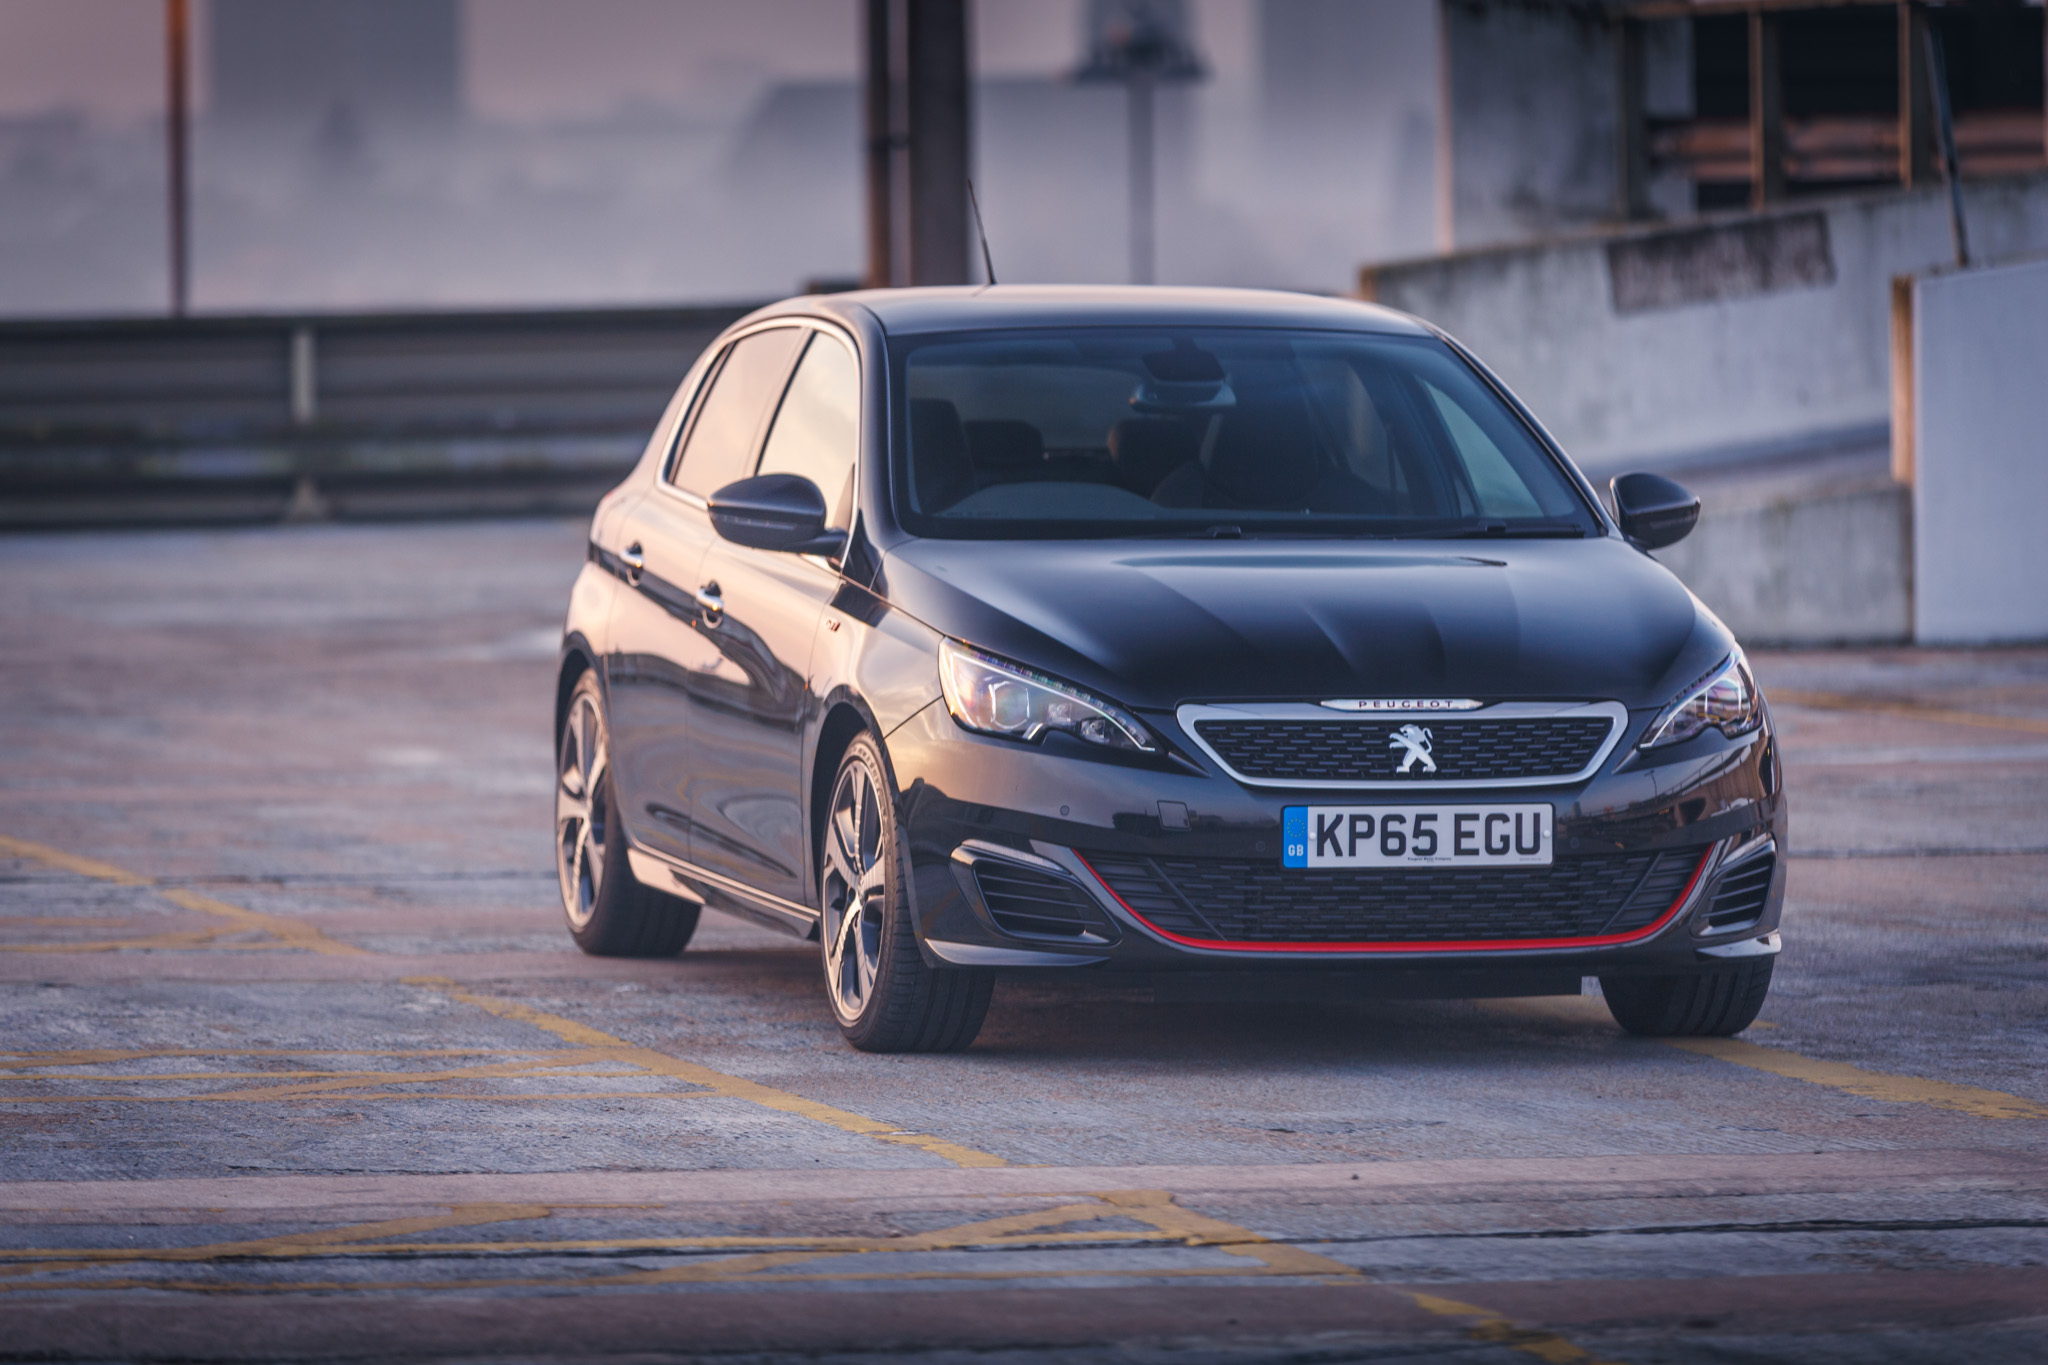 shooting the peugeot 308 gti by peugeot sport. Black Bedroom Furniture Sets. Home Design Ideas